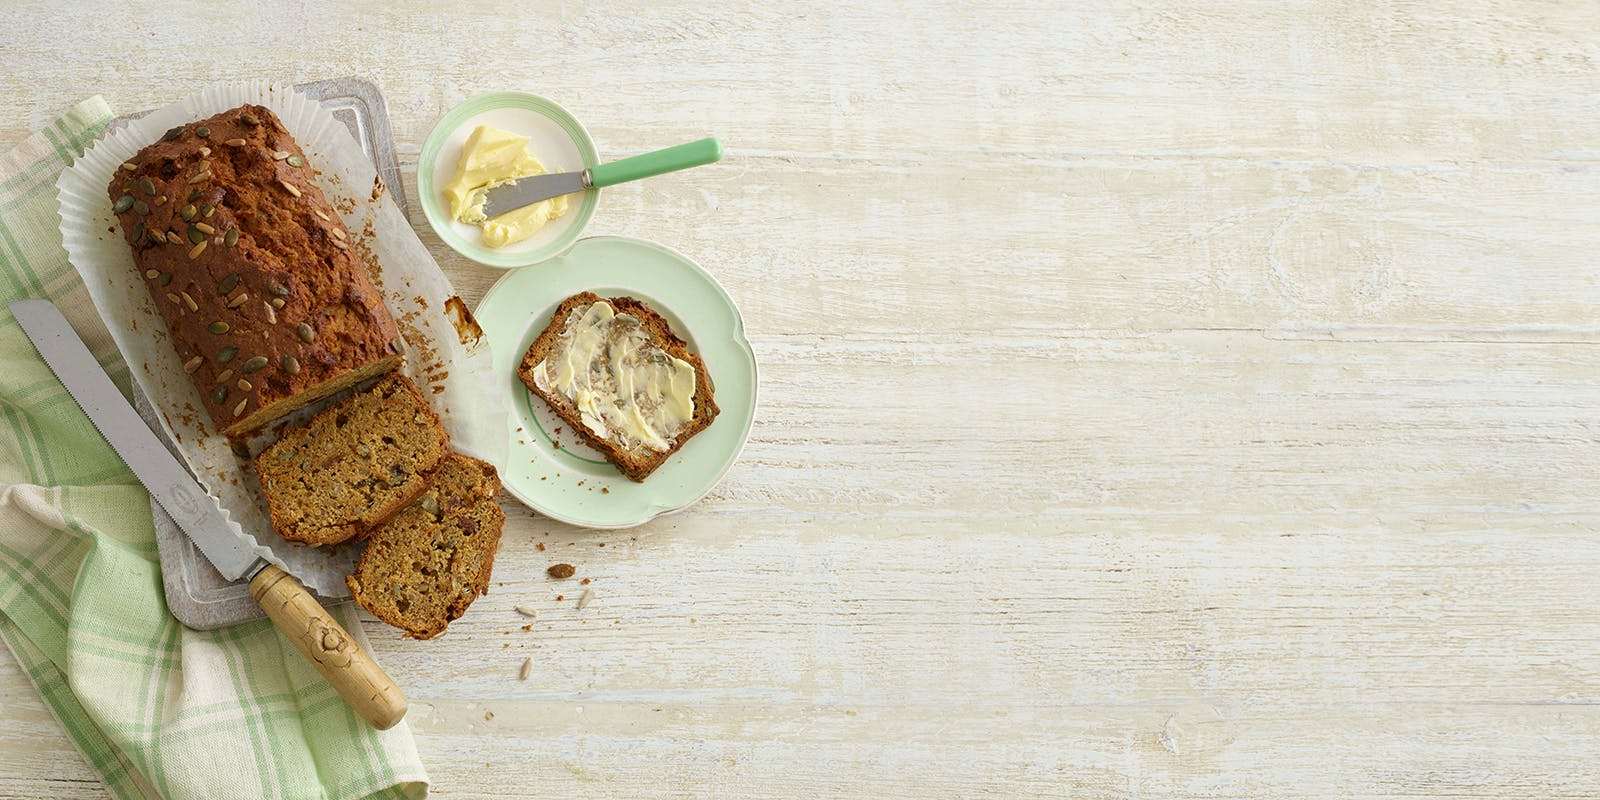 Banana, carrot and seed bread